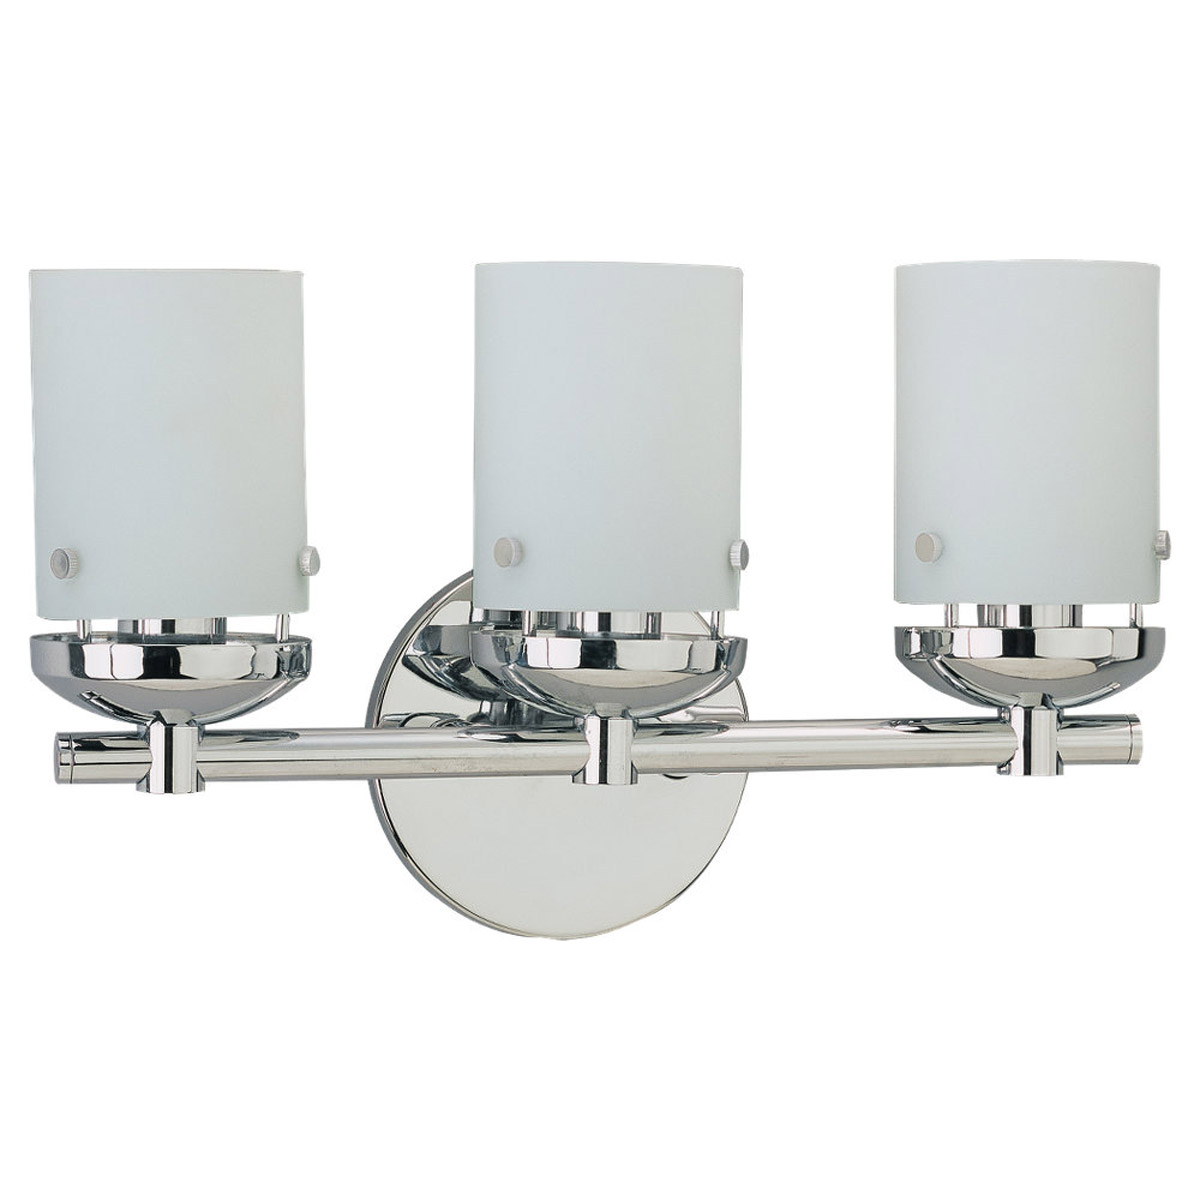 Sea Gull Lighting Bliss 3 Light Bath Vanity in Chrome 40045-05